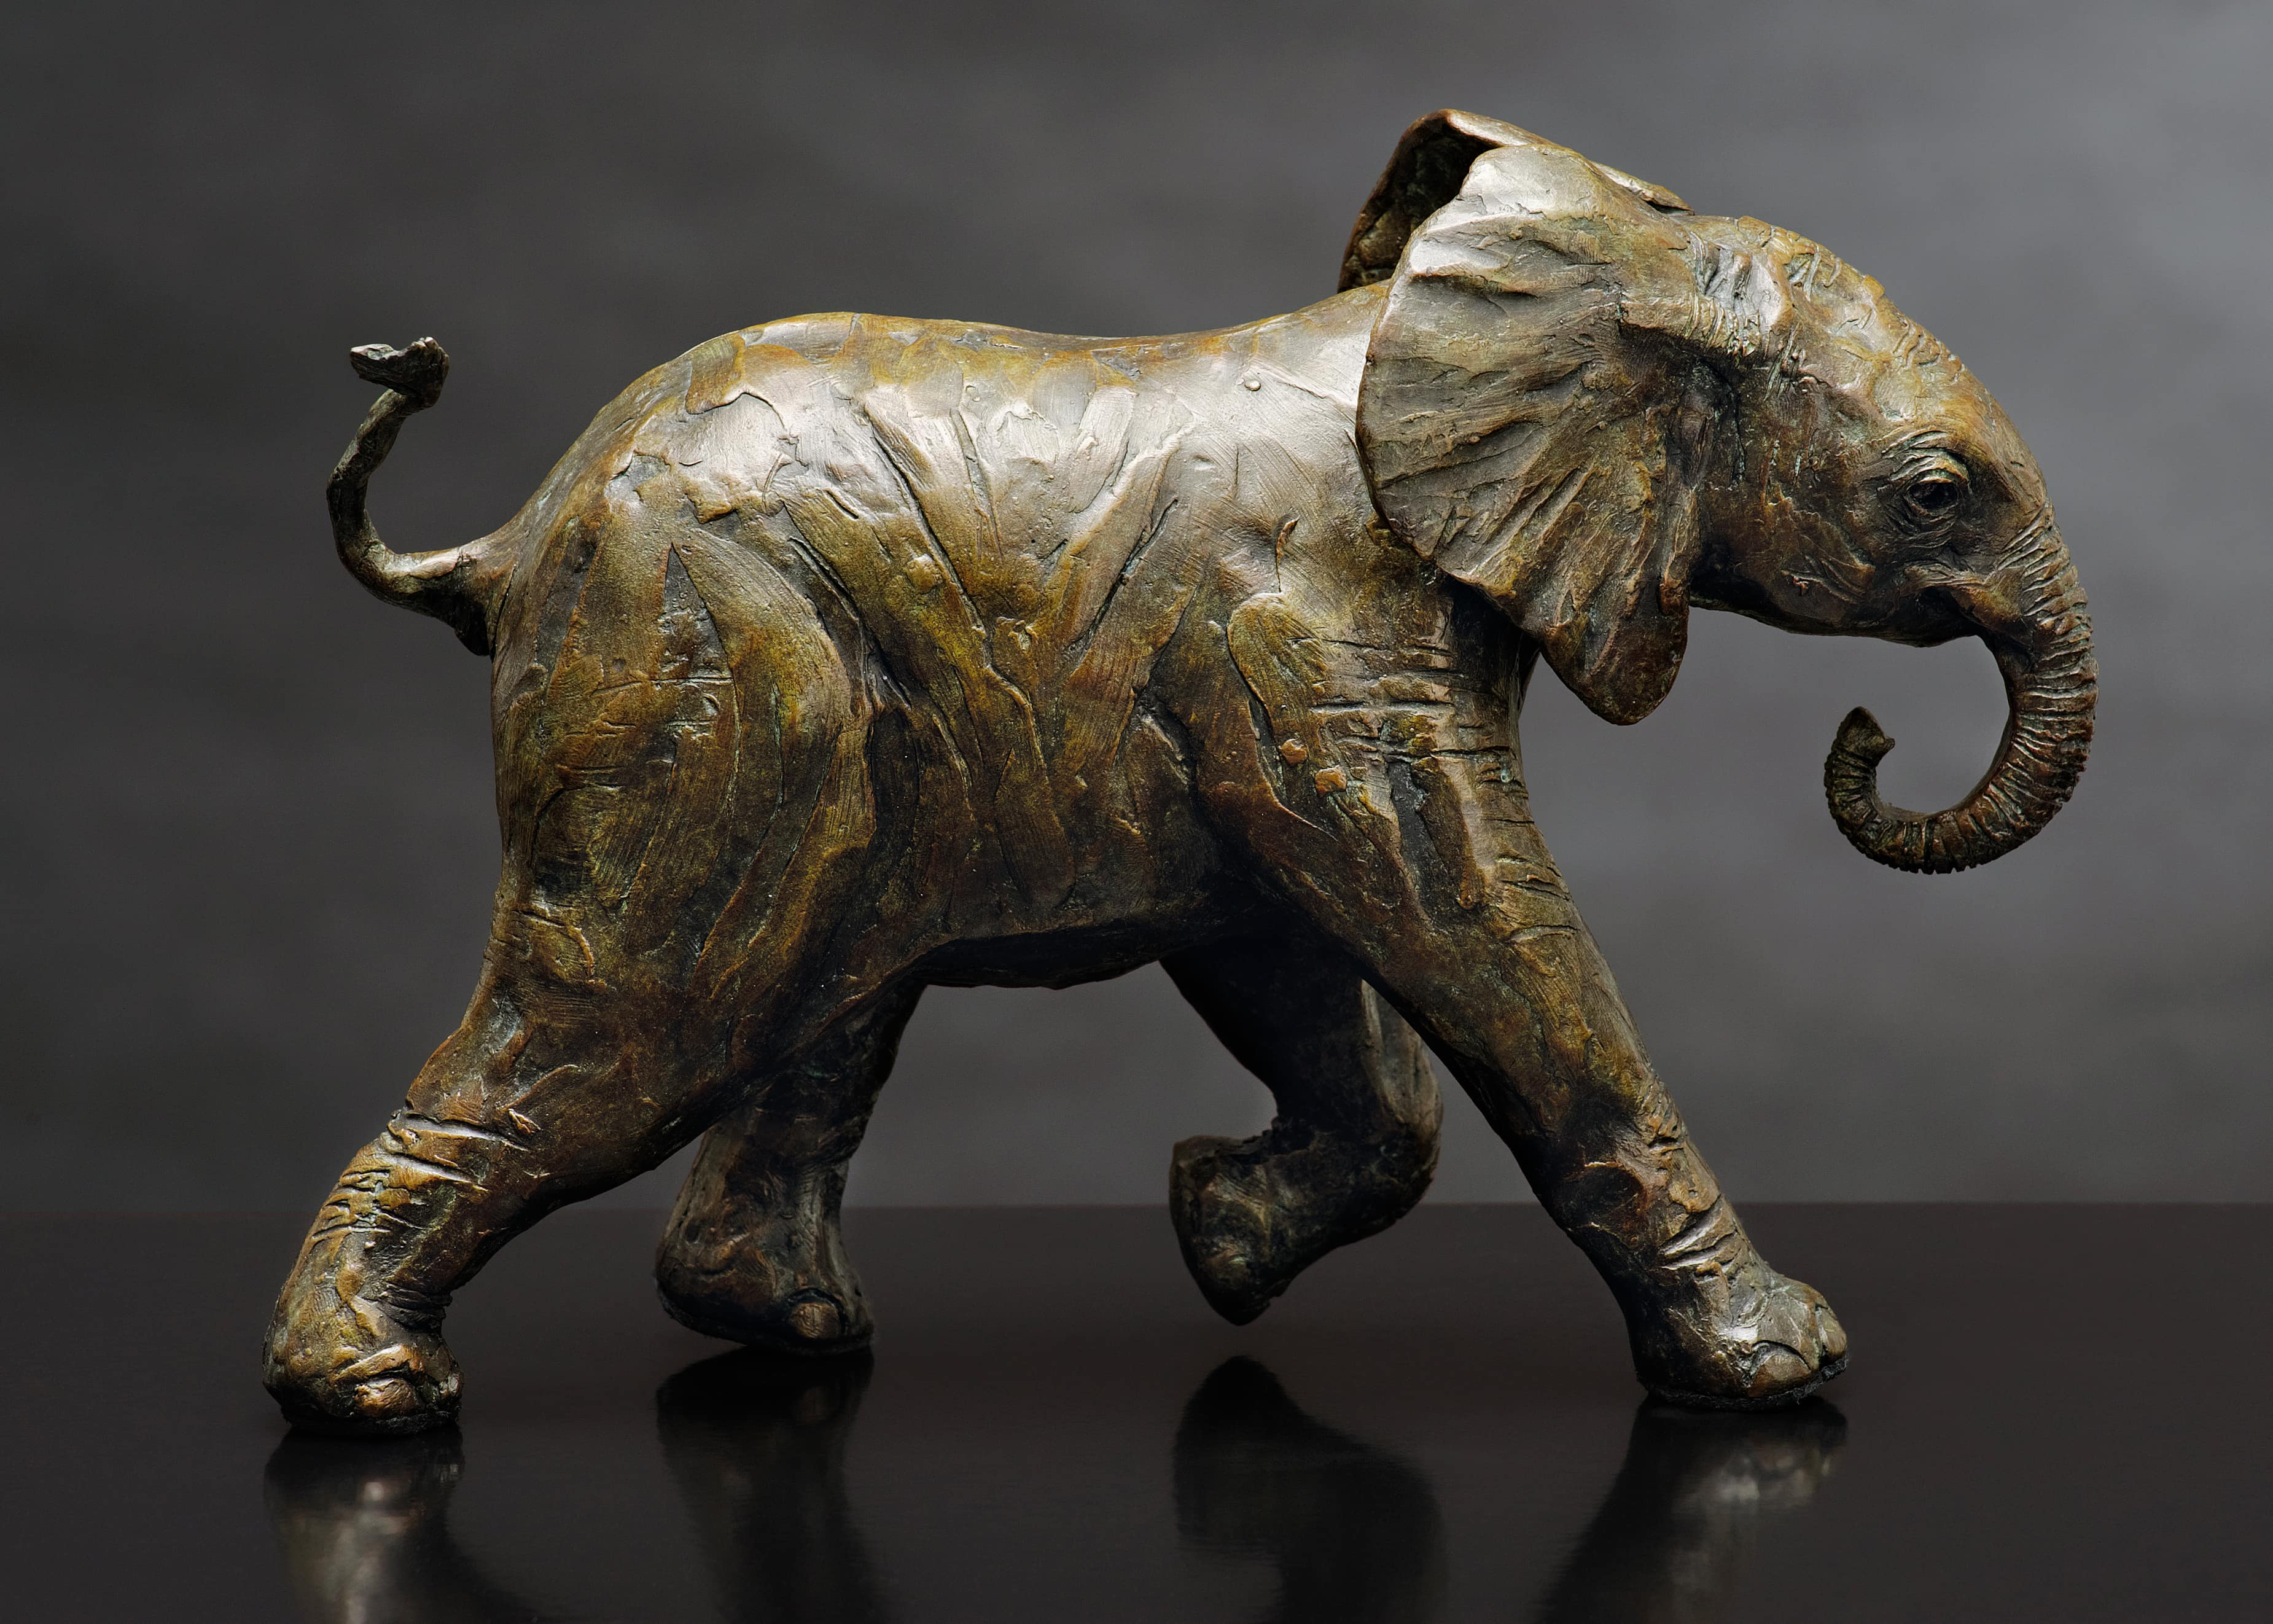 Bruce Little, bronze sculpture of a young elephant, Youthful Exuberance II